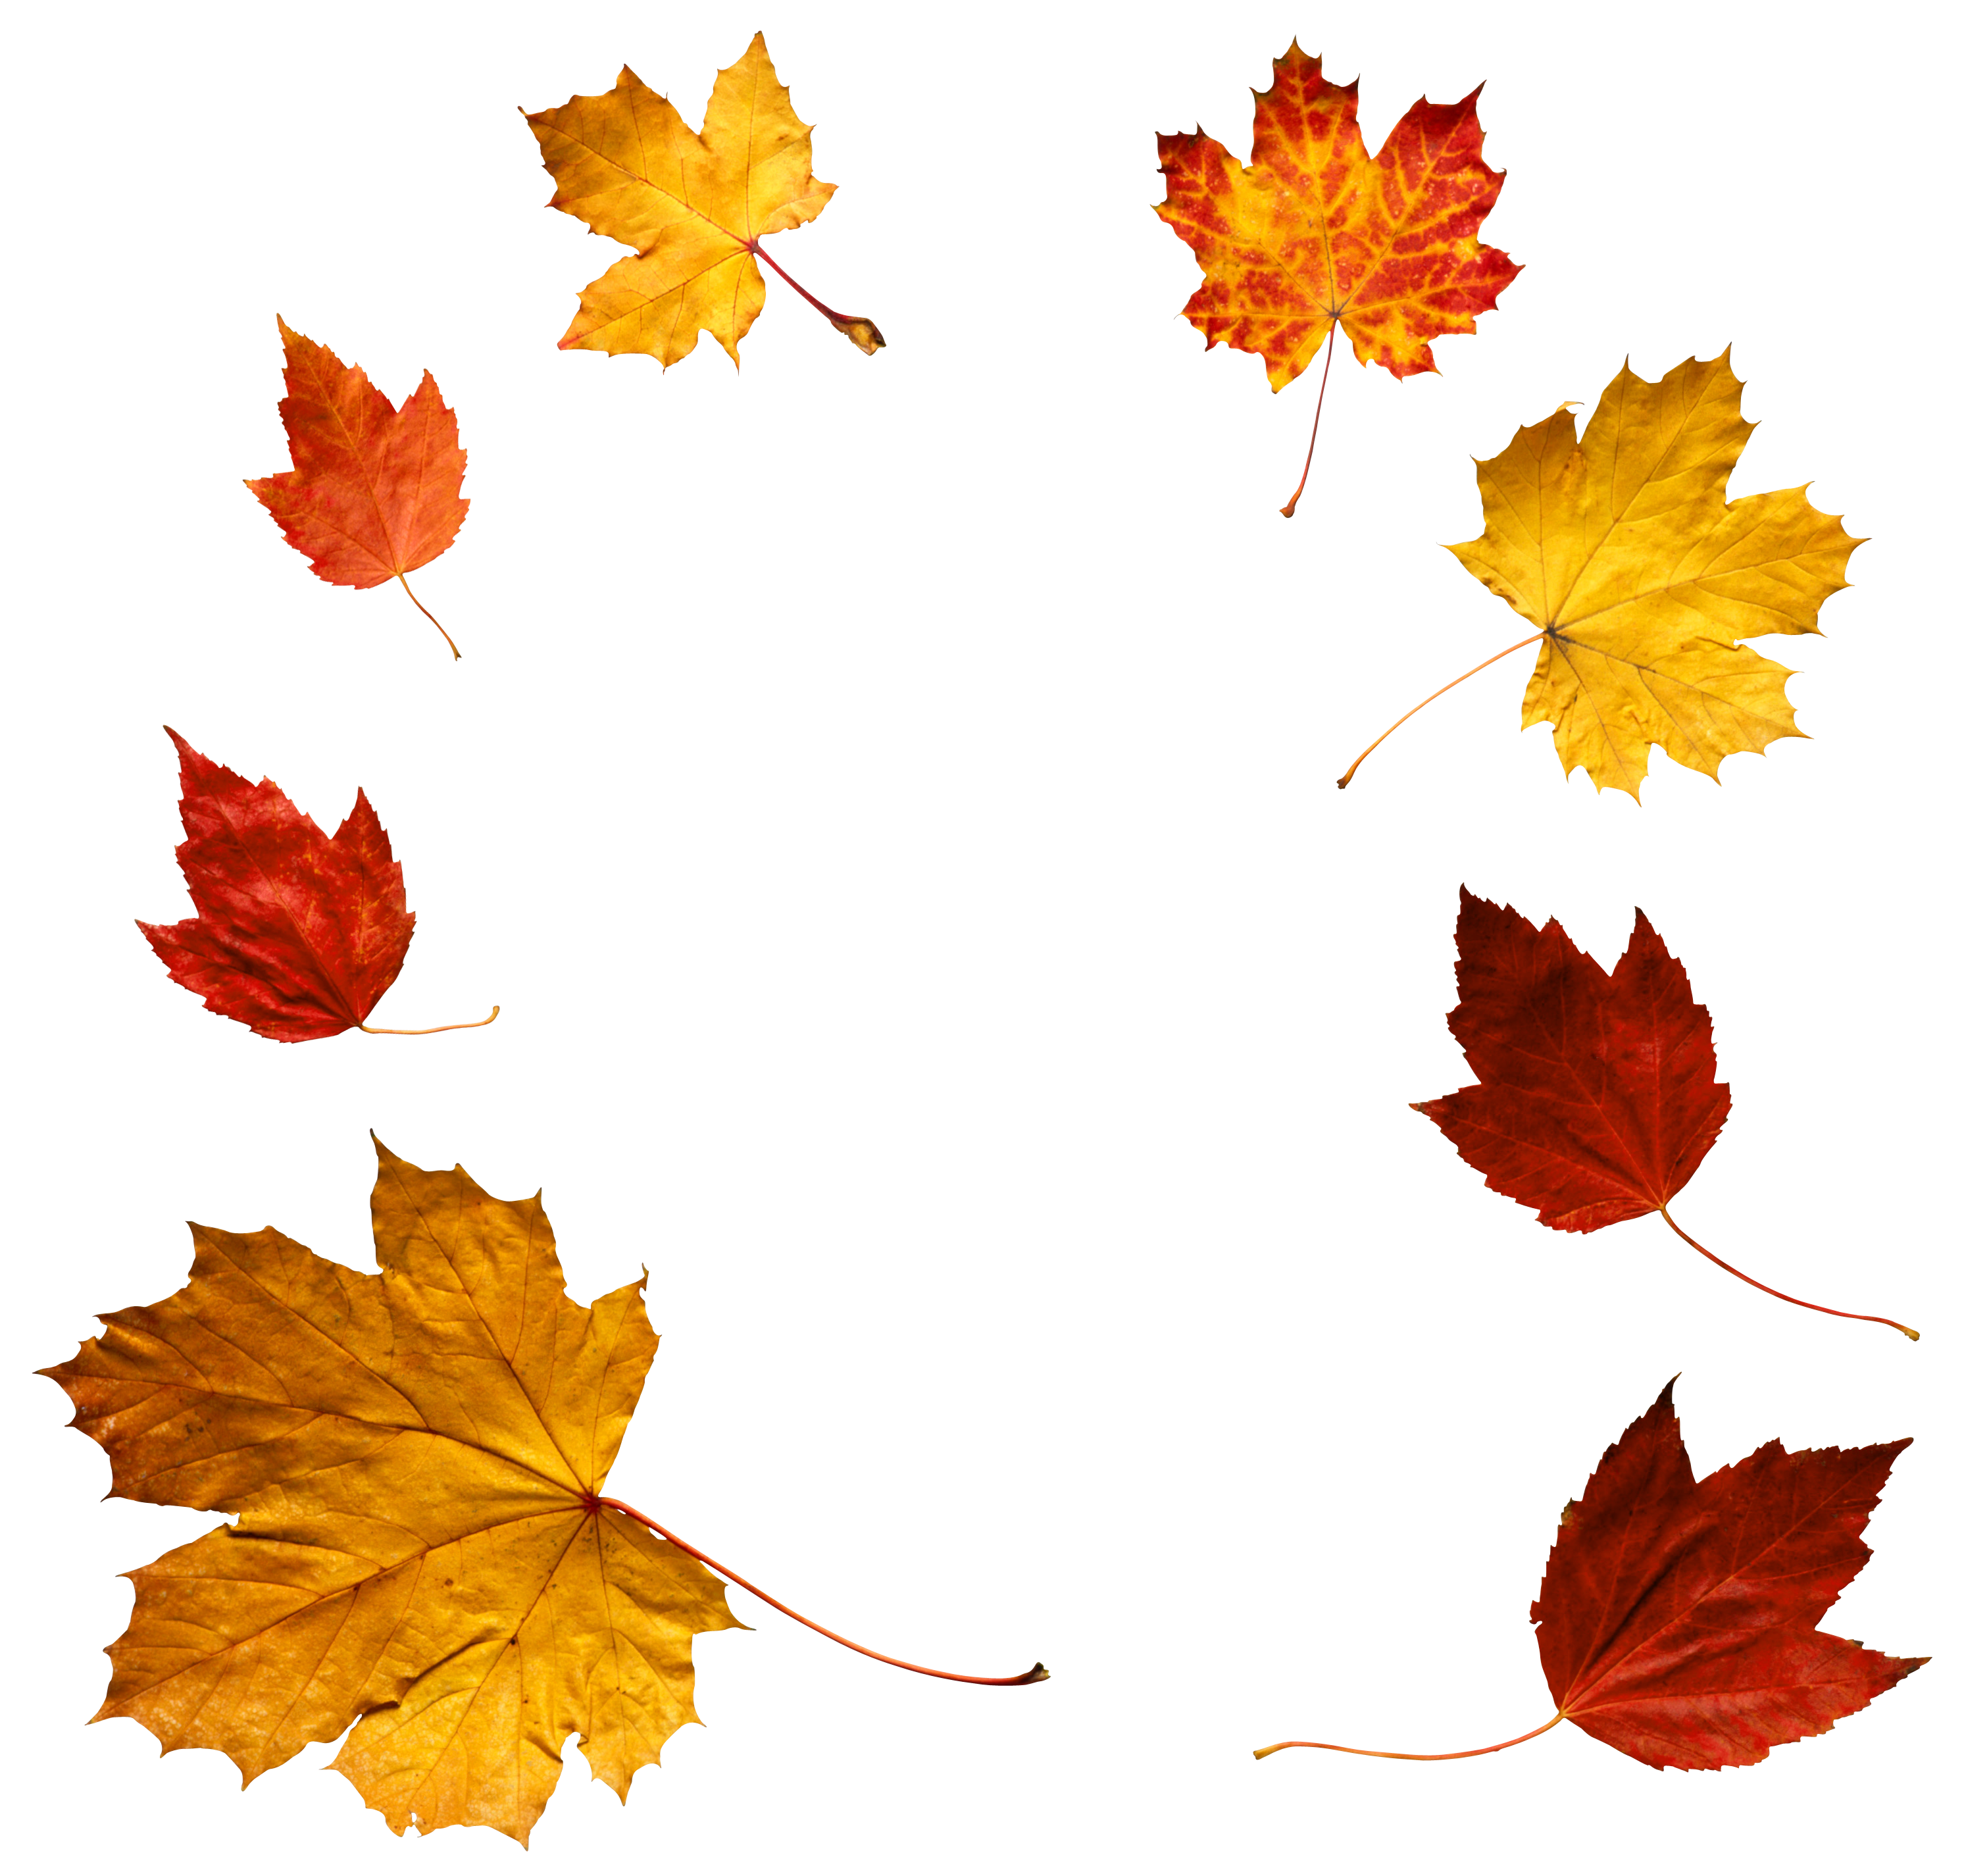 Png falling leaves overlay. Autumn clipart gallery yopriceville